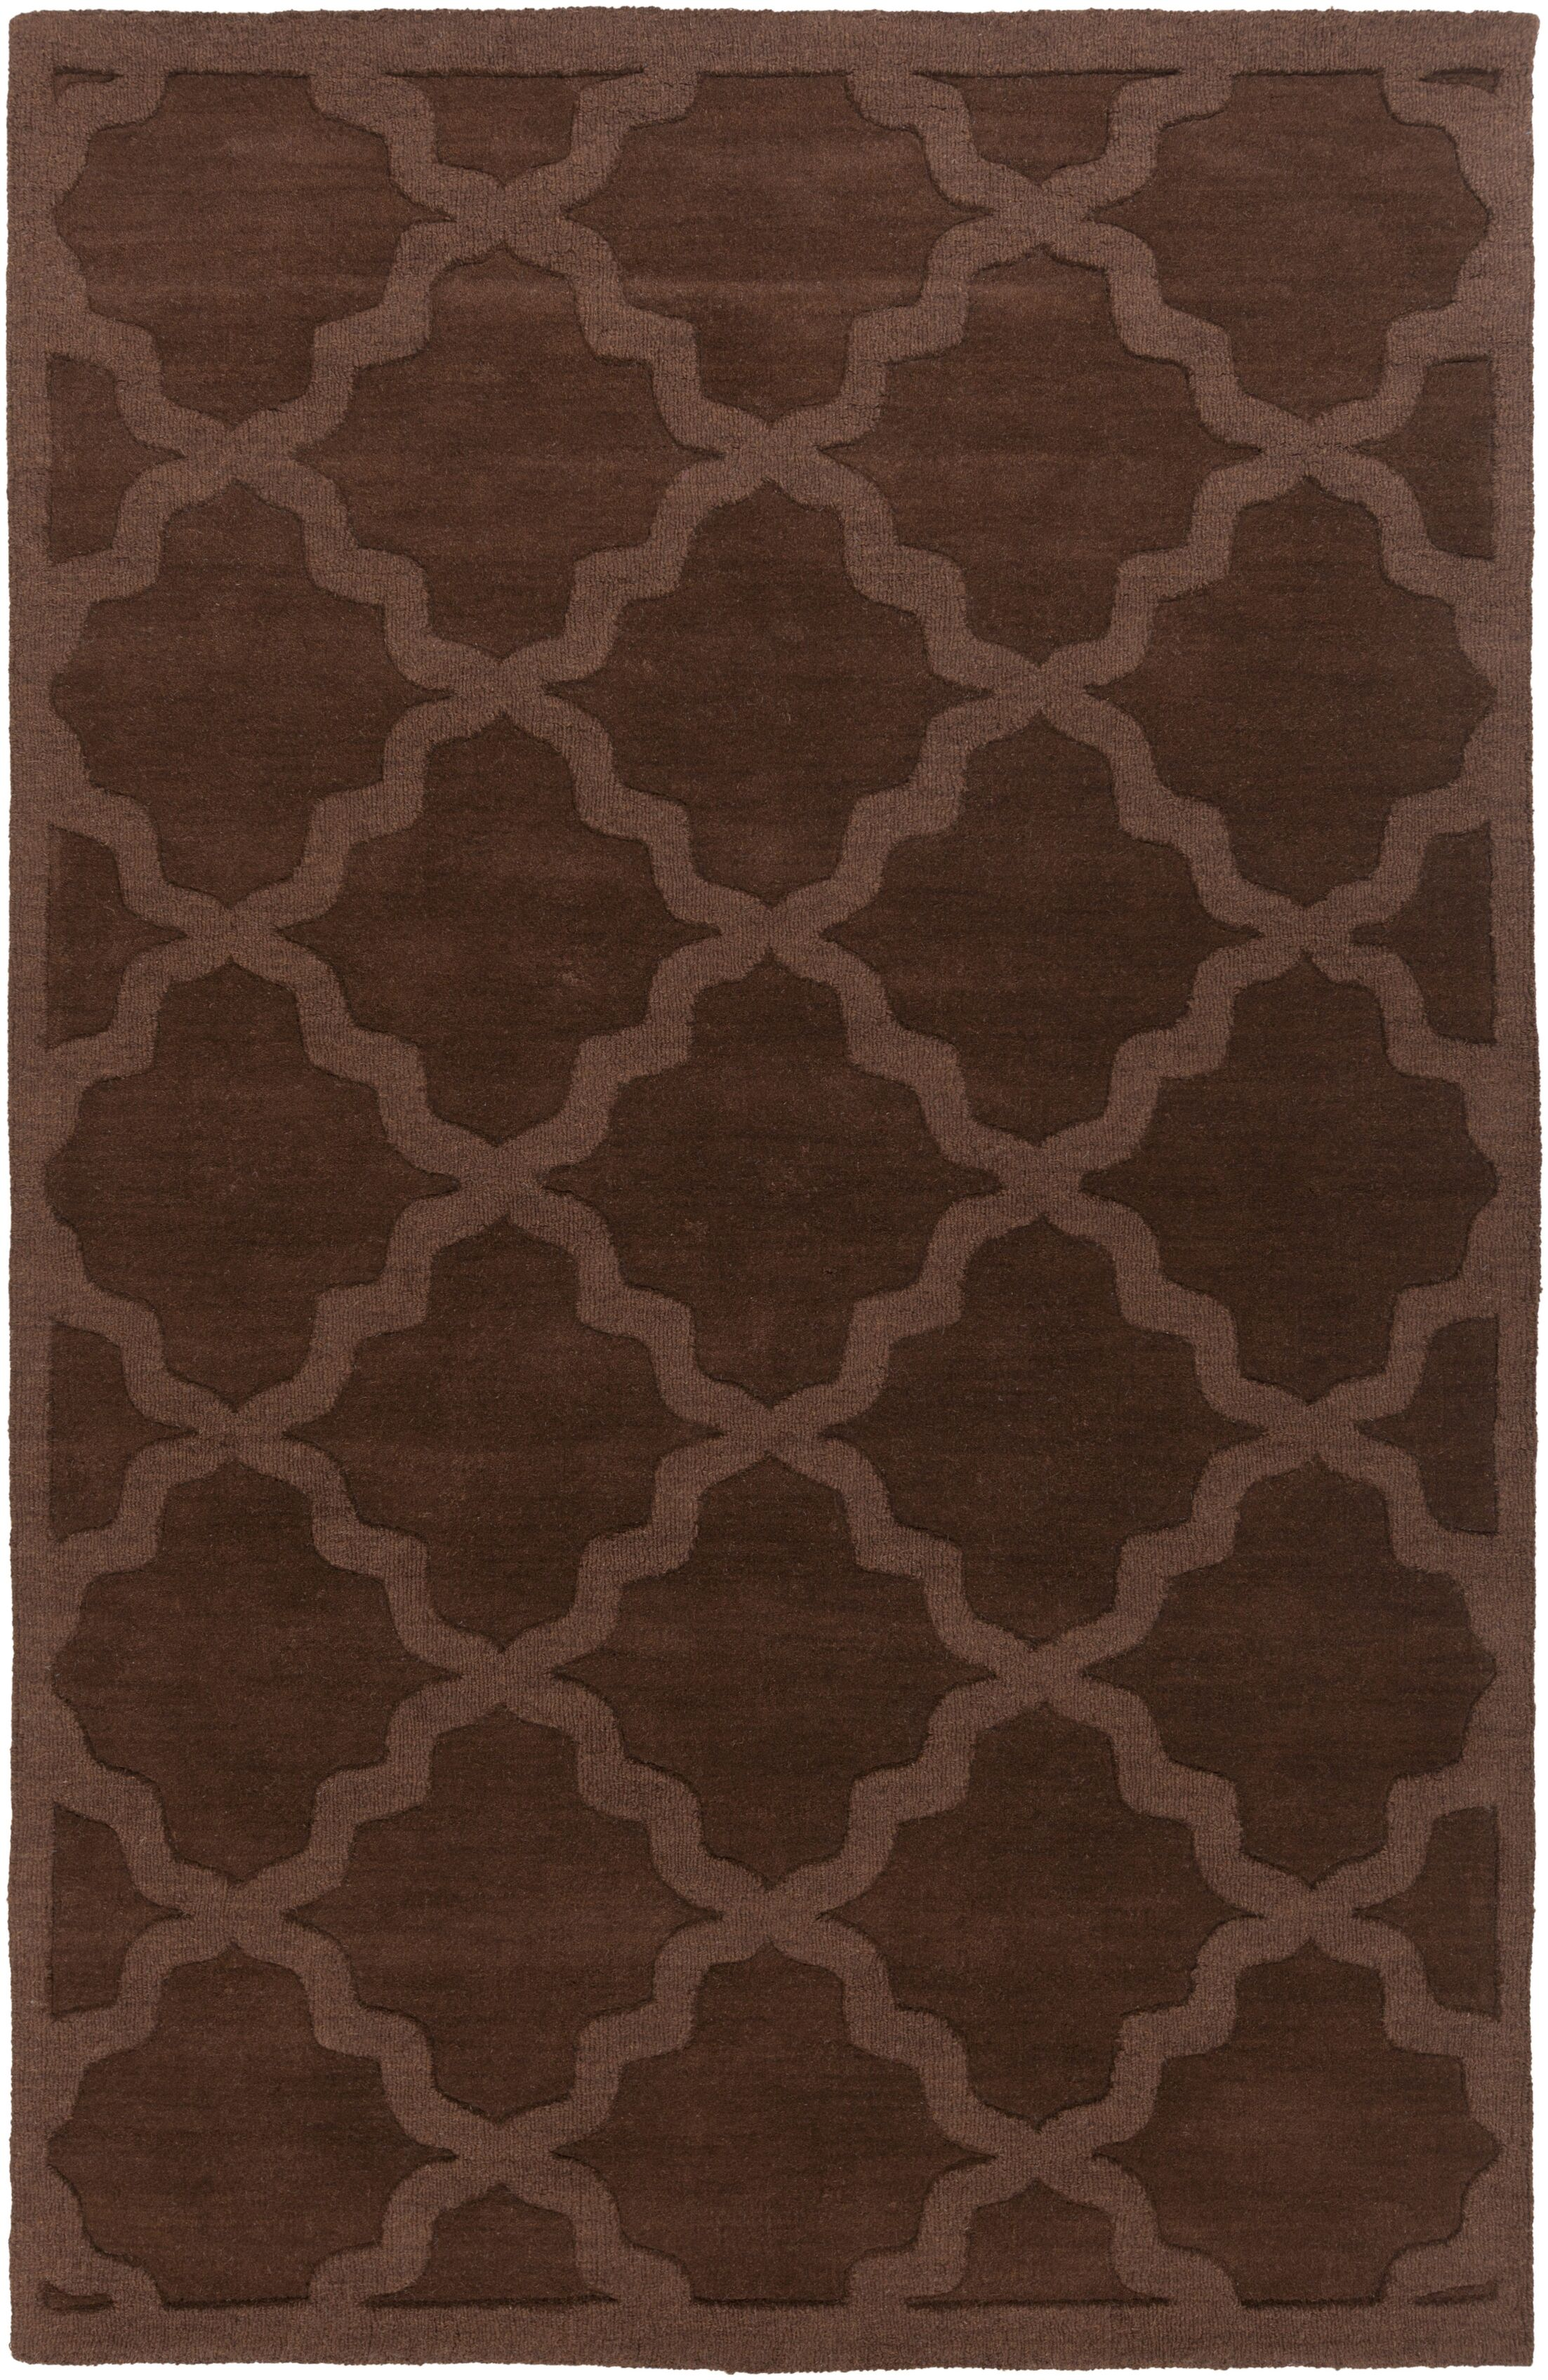 Blankenship Brown Geometric Abbey Area Rug Rug Size: Rectangle 6' x 9'